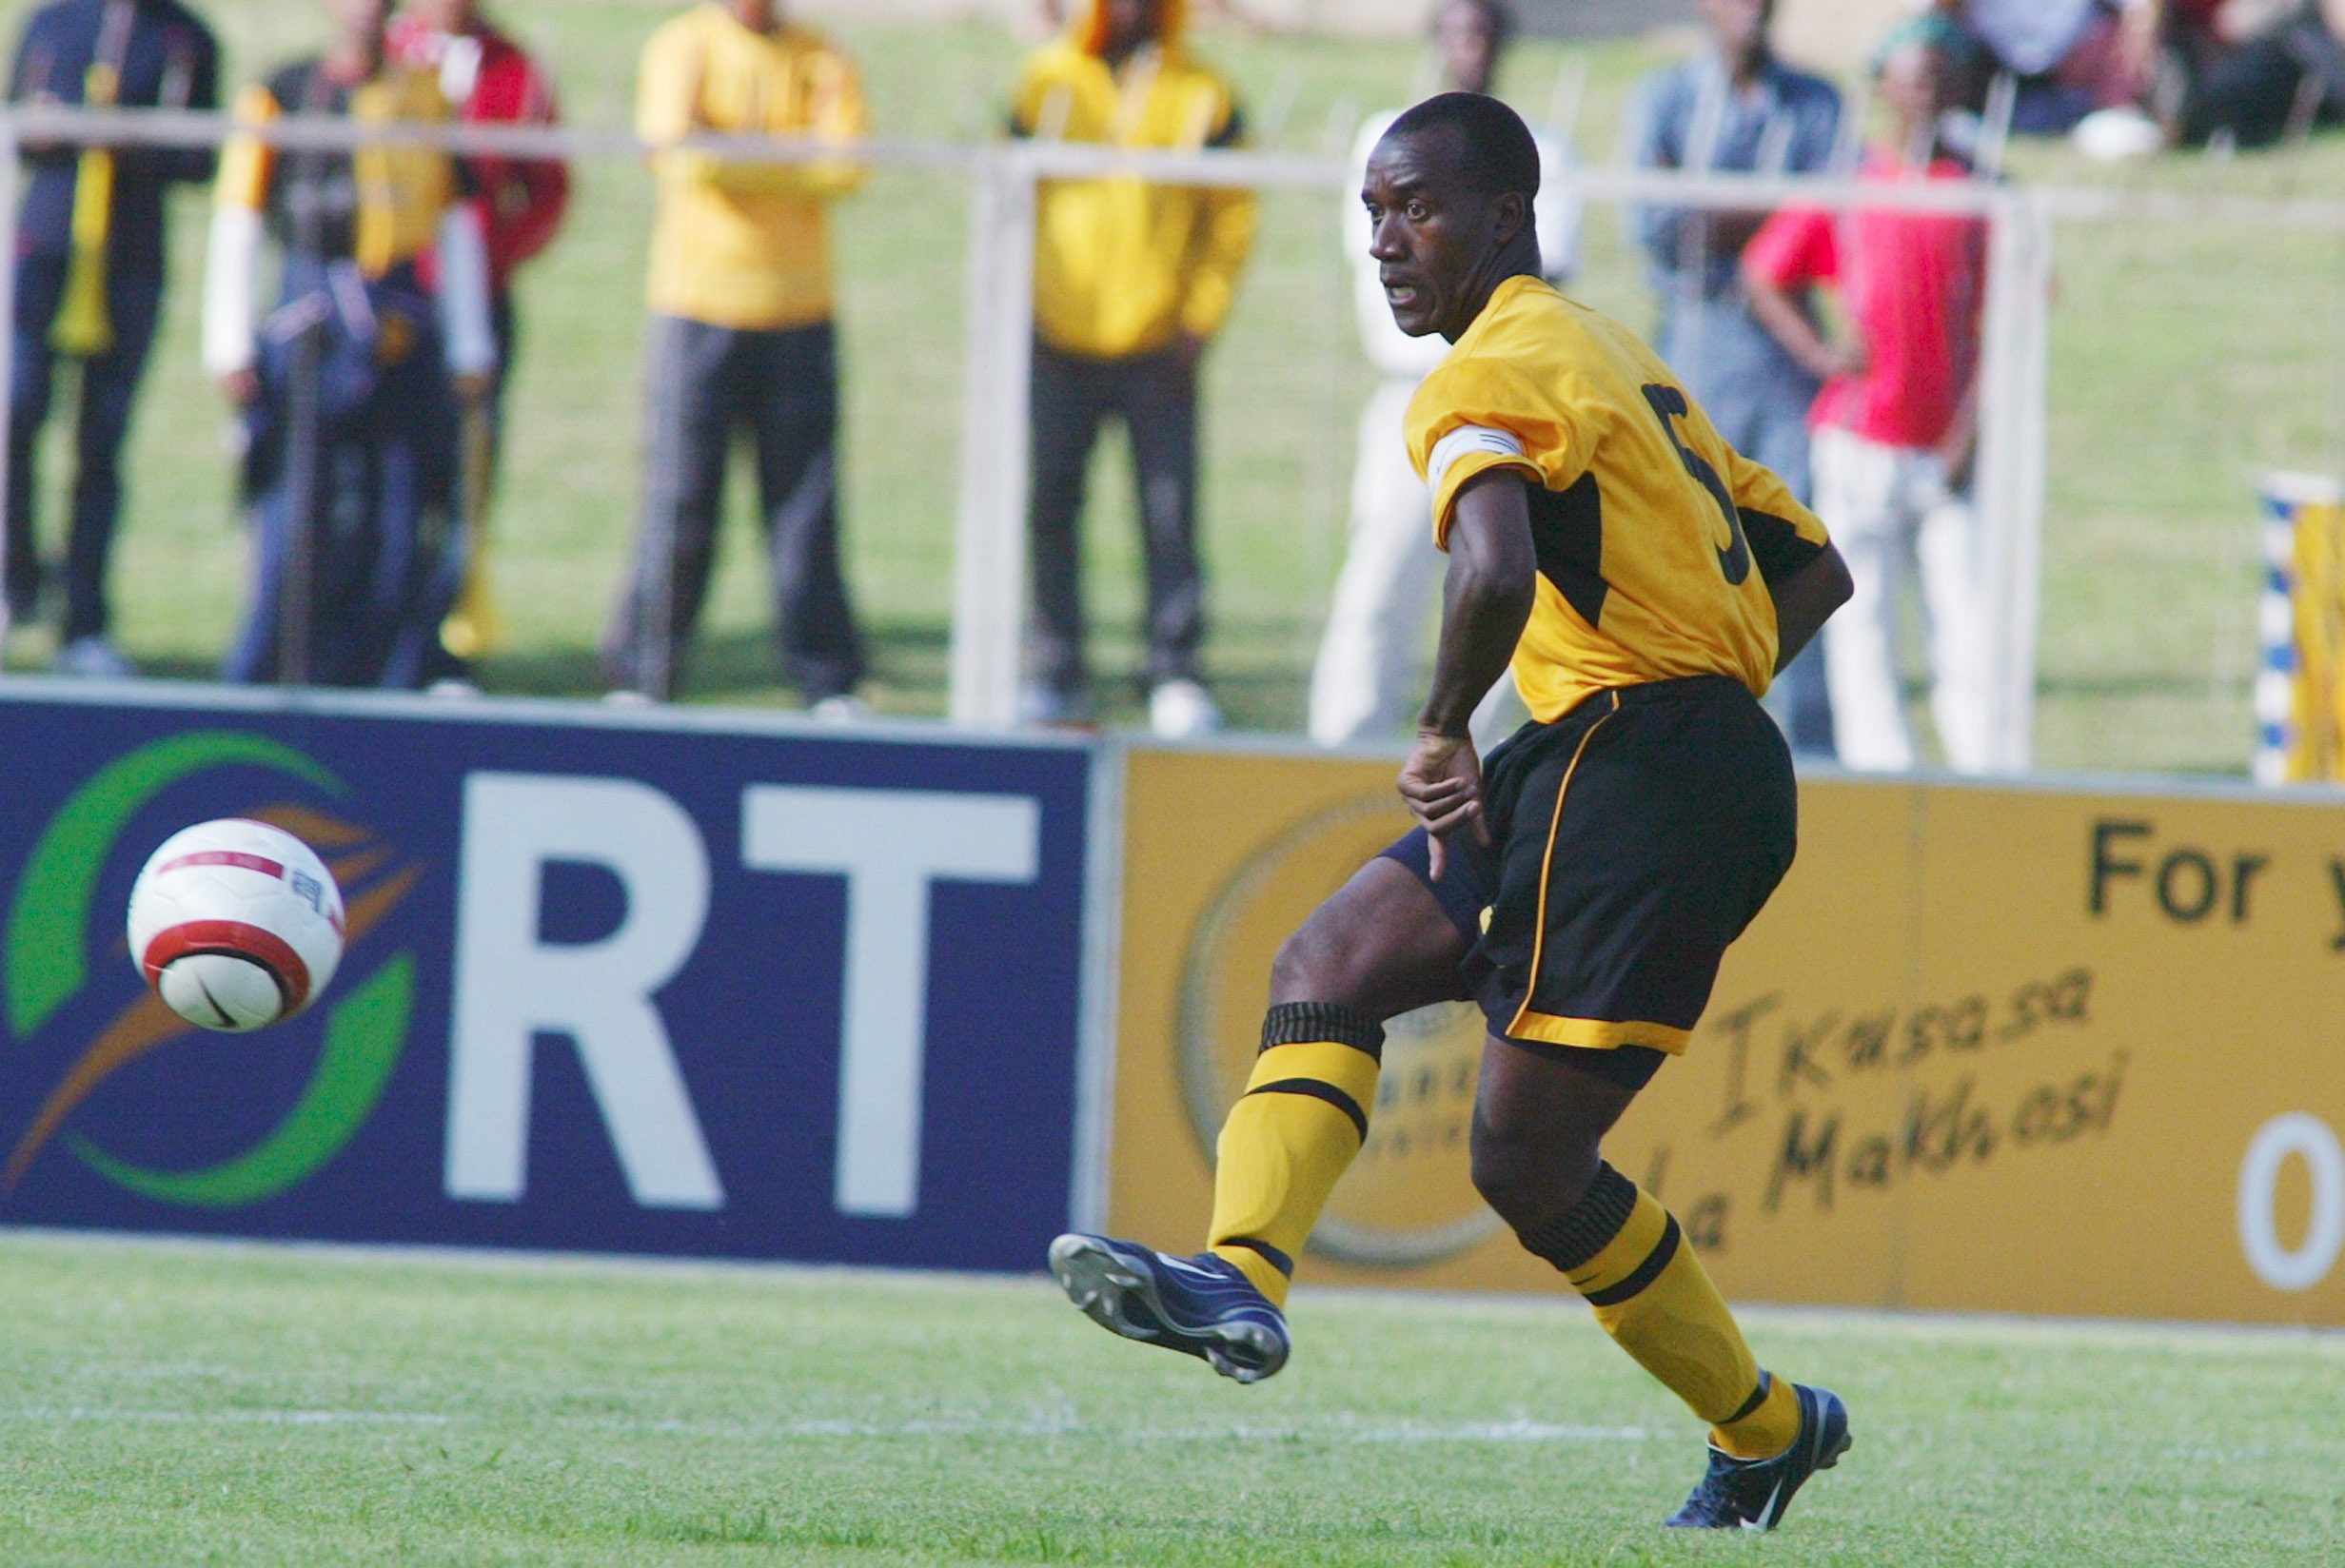 Patrick Mabedi, former Kaizer Chiefs captain